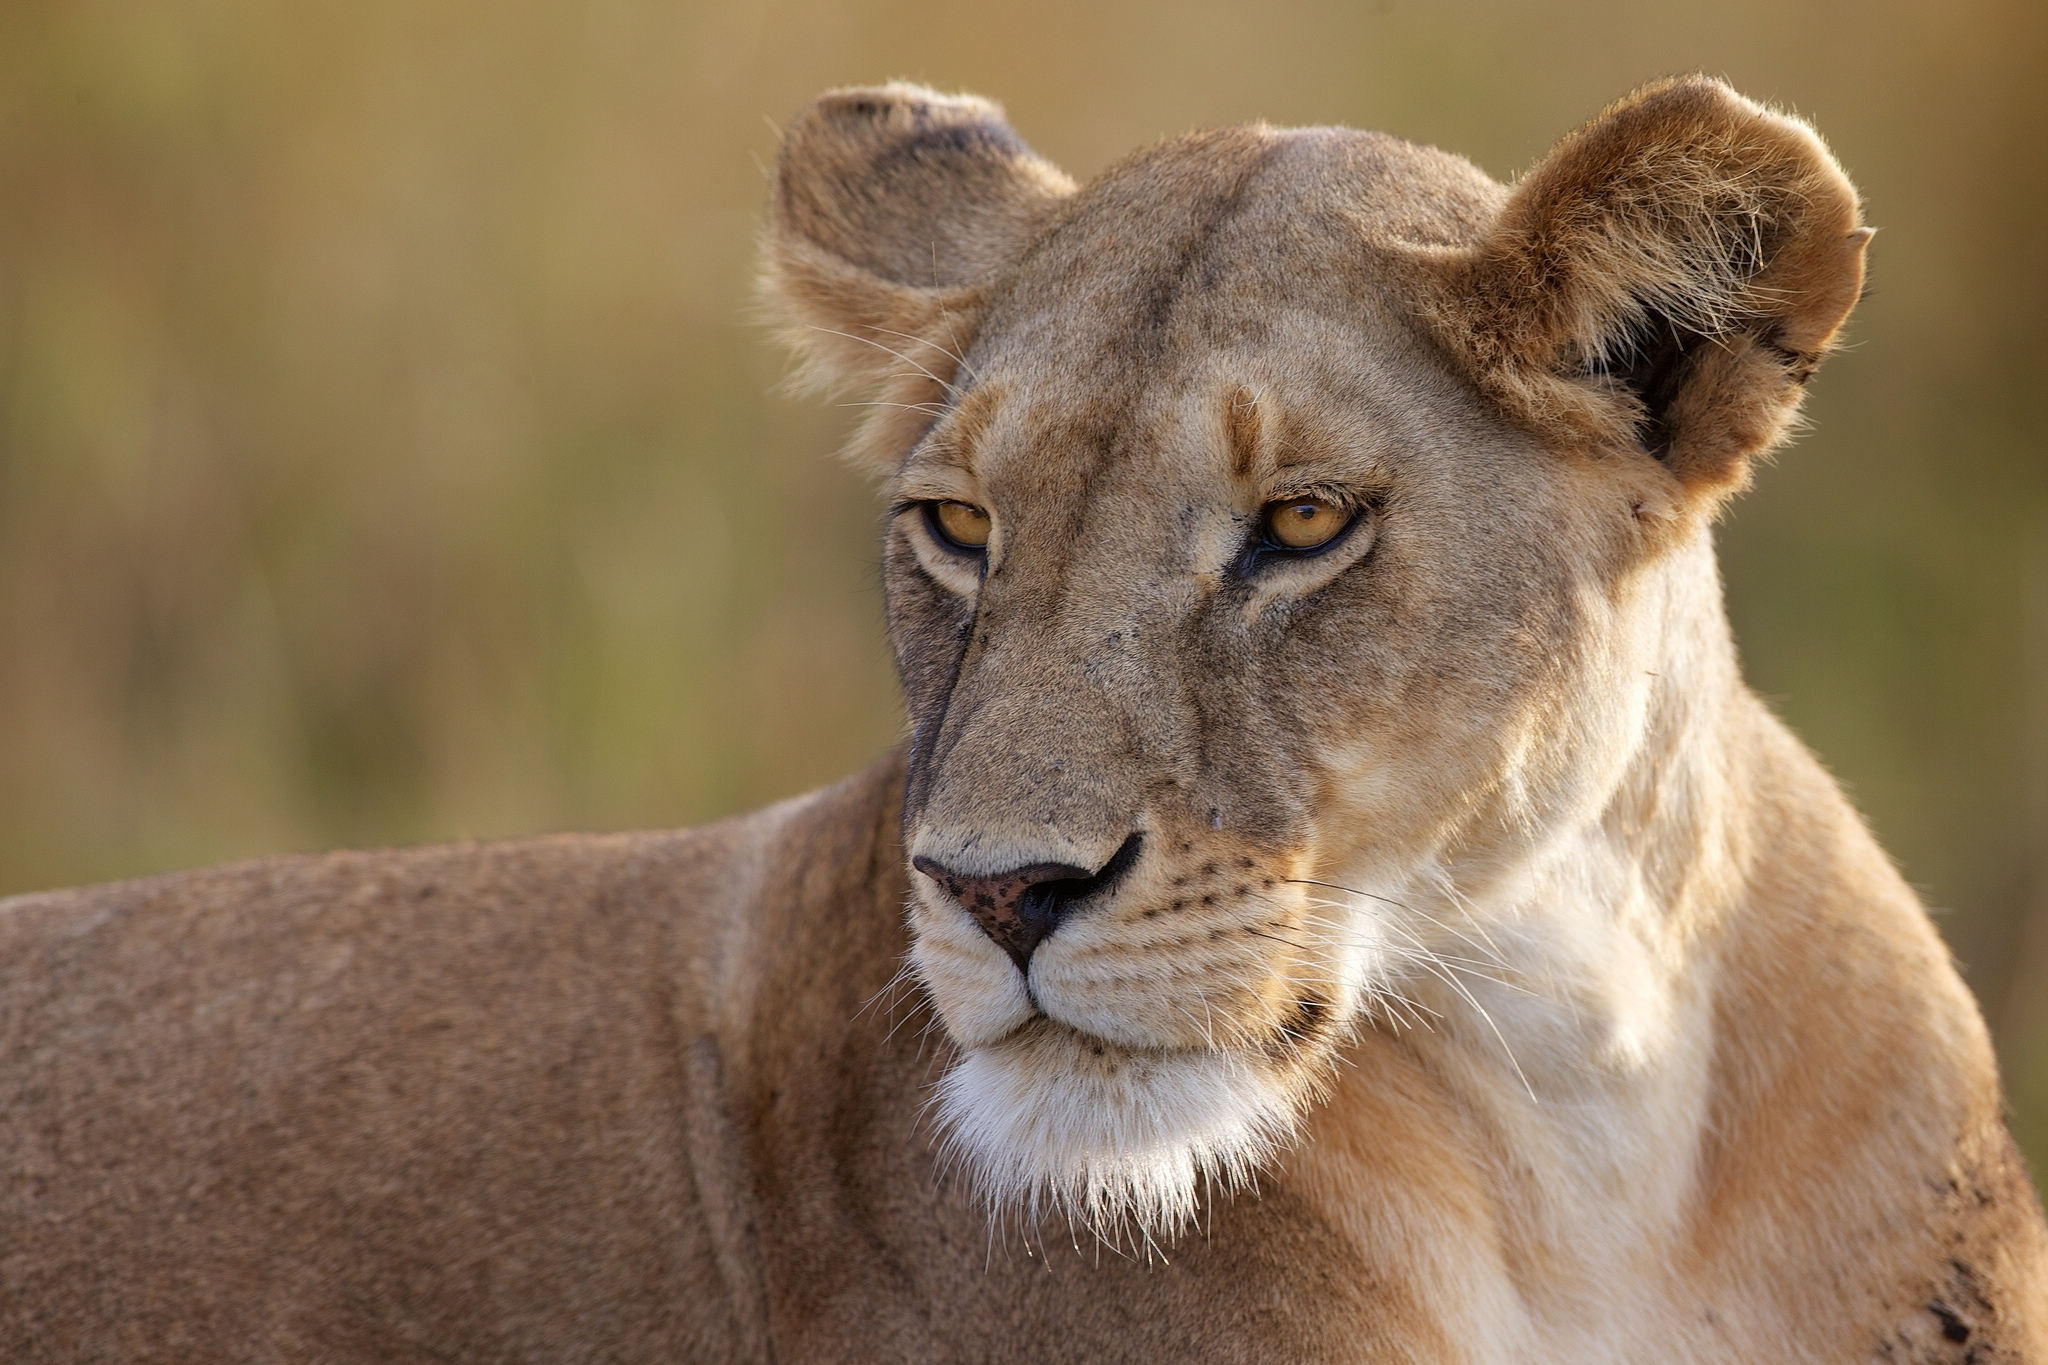 50760 download wallpaper Animals, Lioness, Predator, Big Cat, Sight, Opinion screensavers and pictures for free